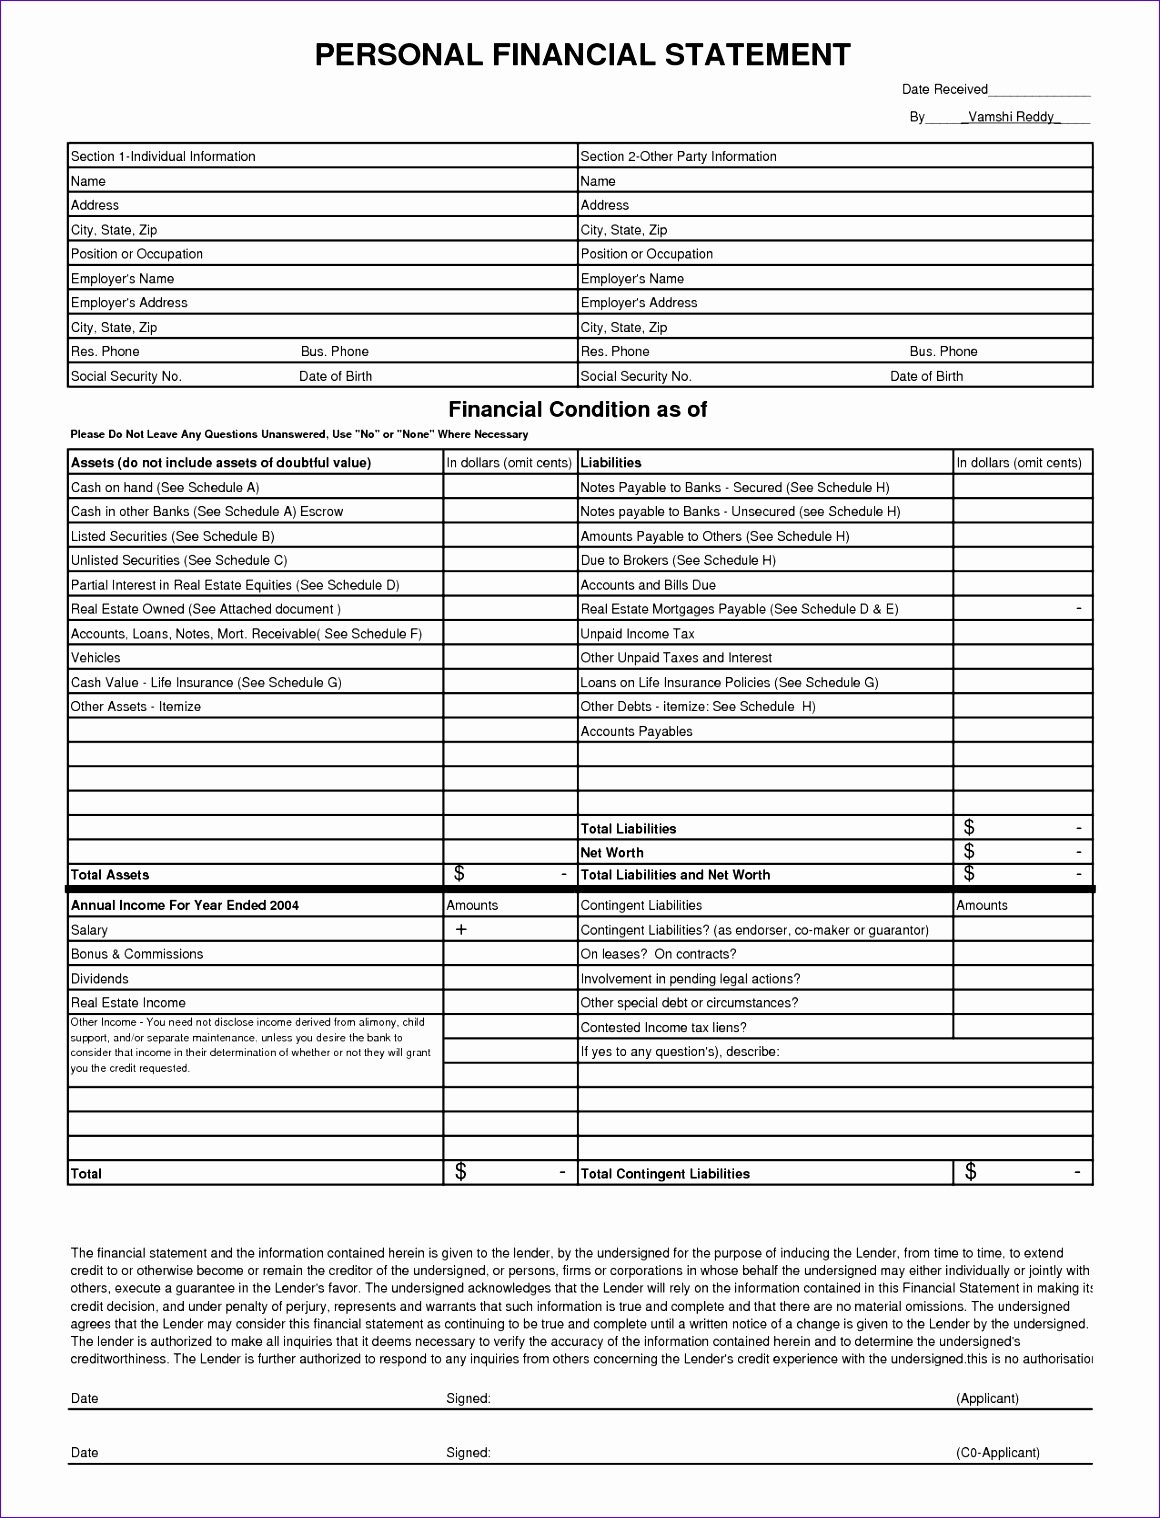 Financial Statement Template 333